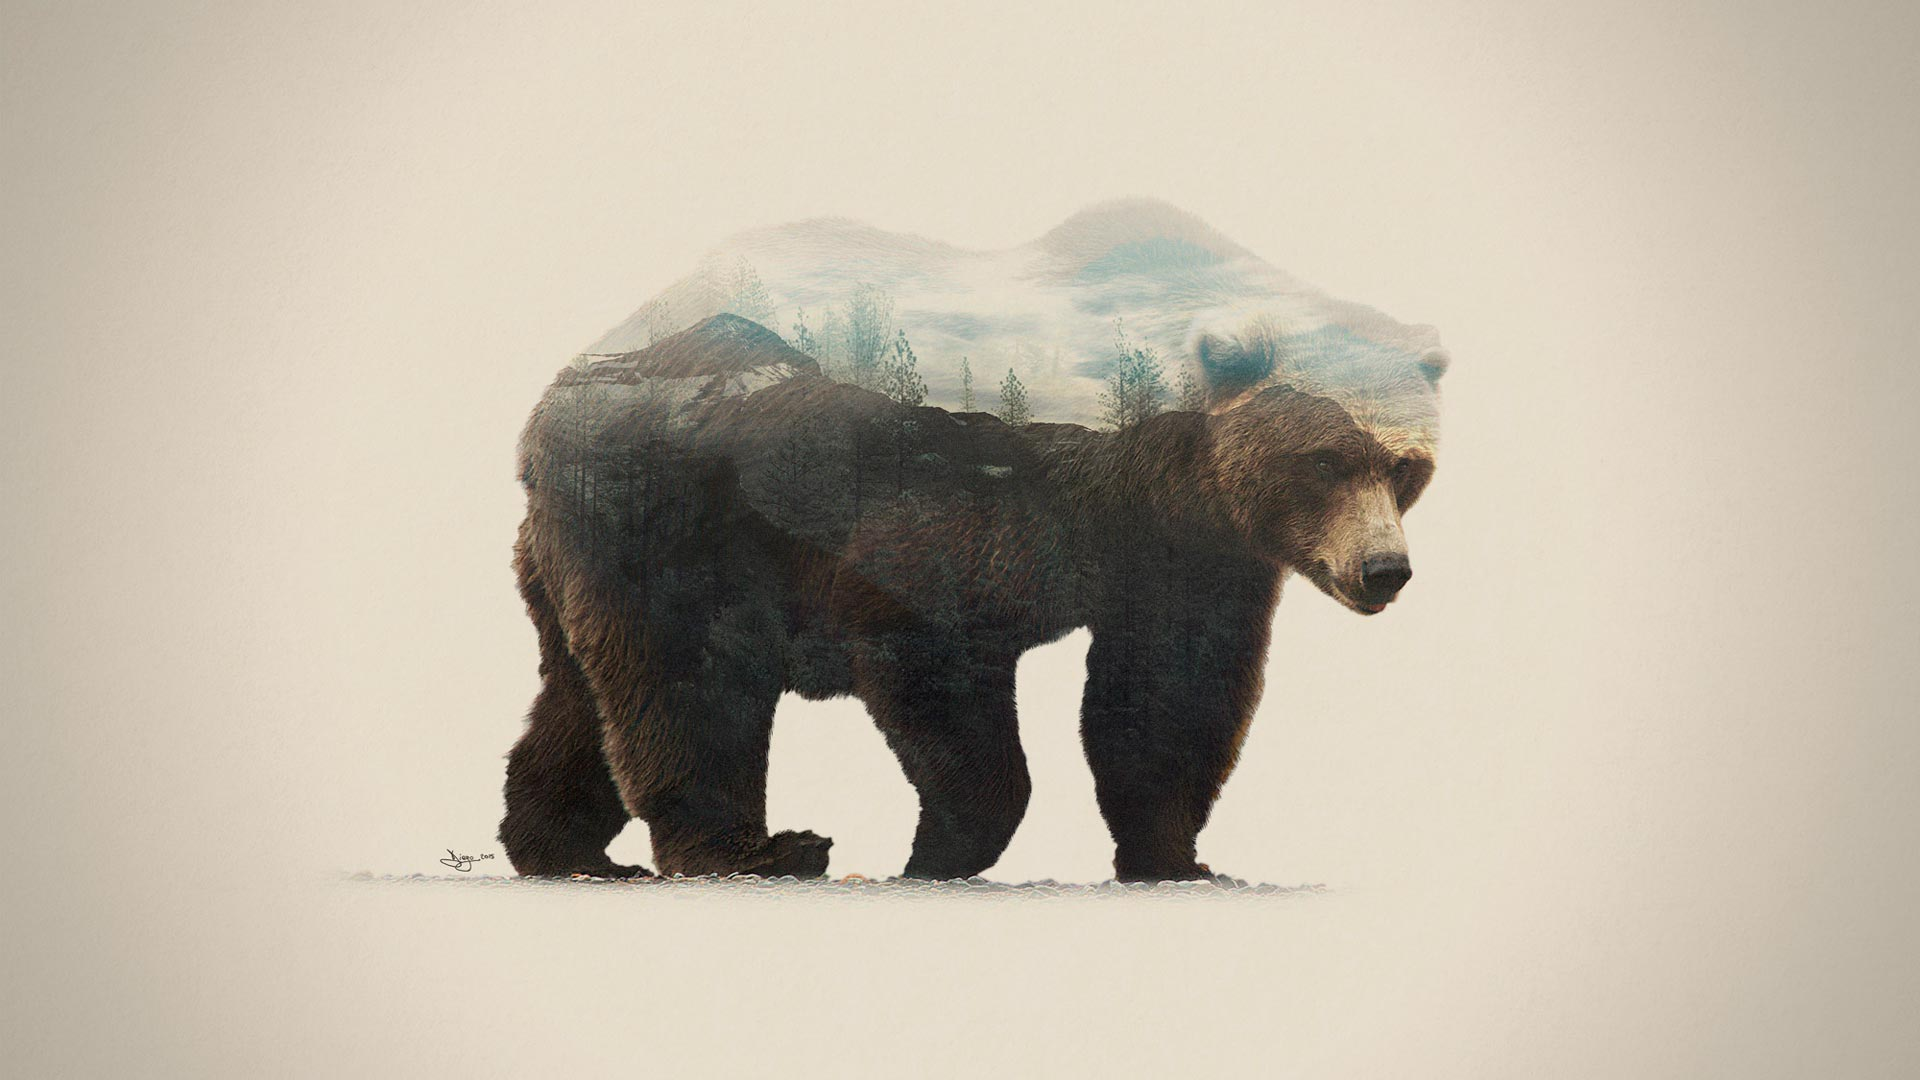 Artwork DEX orso - Double Exposure Animal & Landscape Portraits